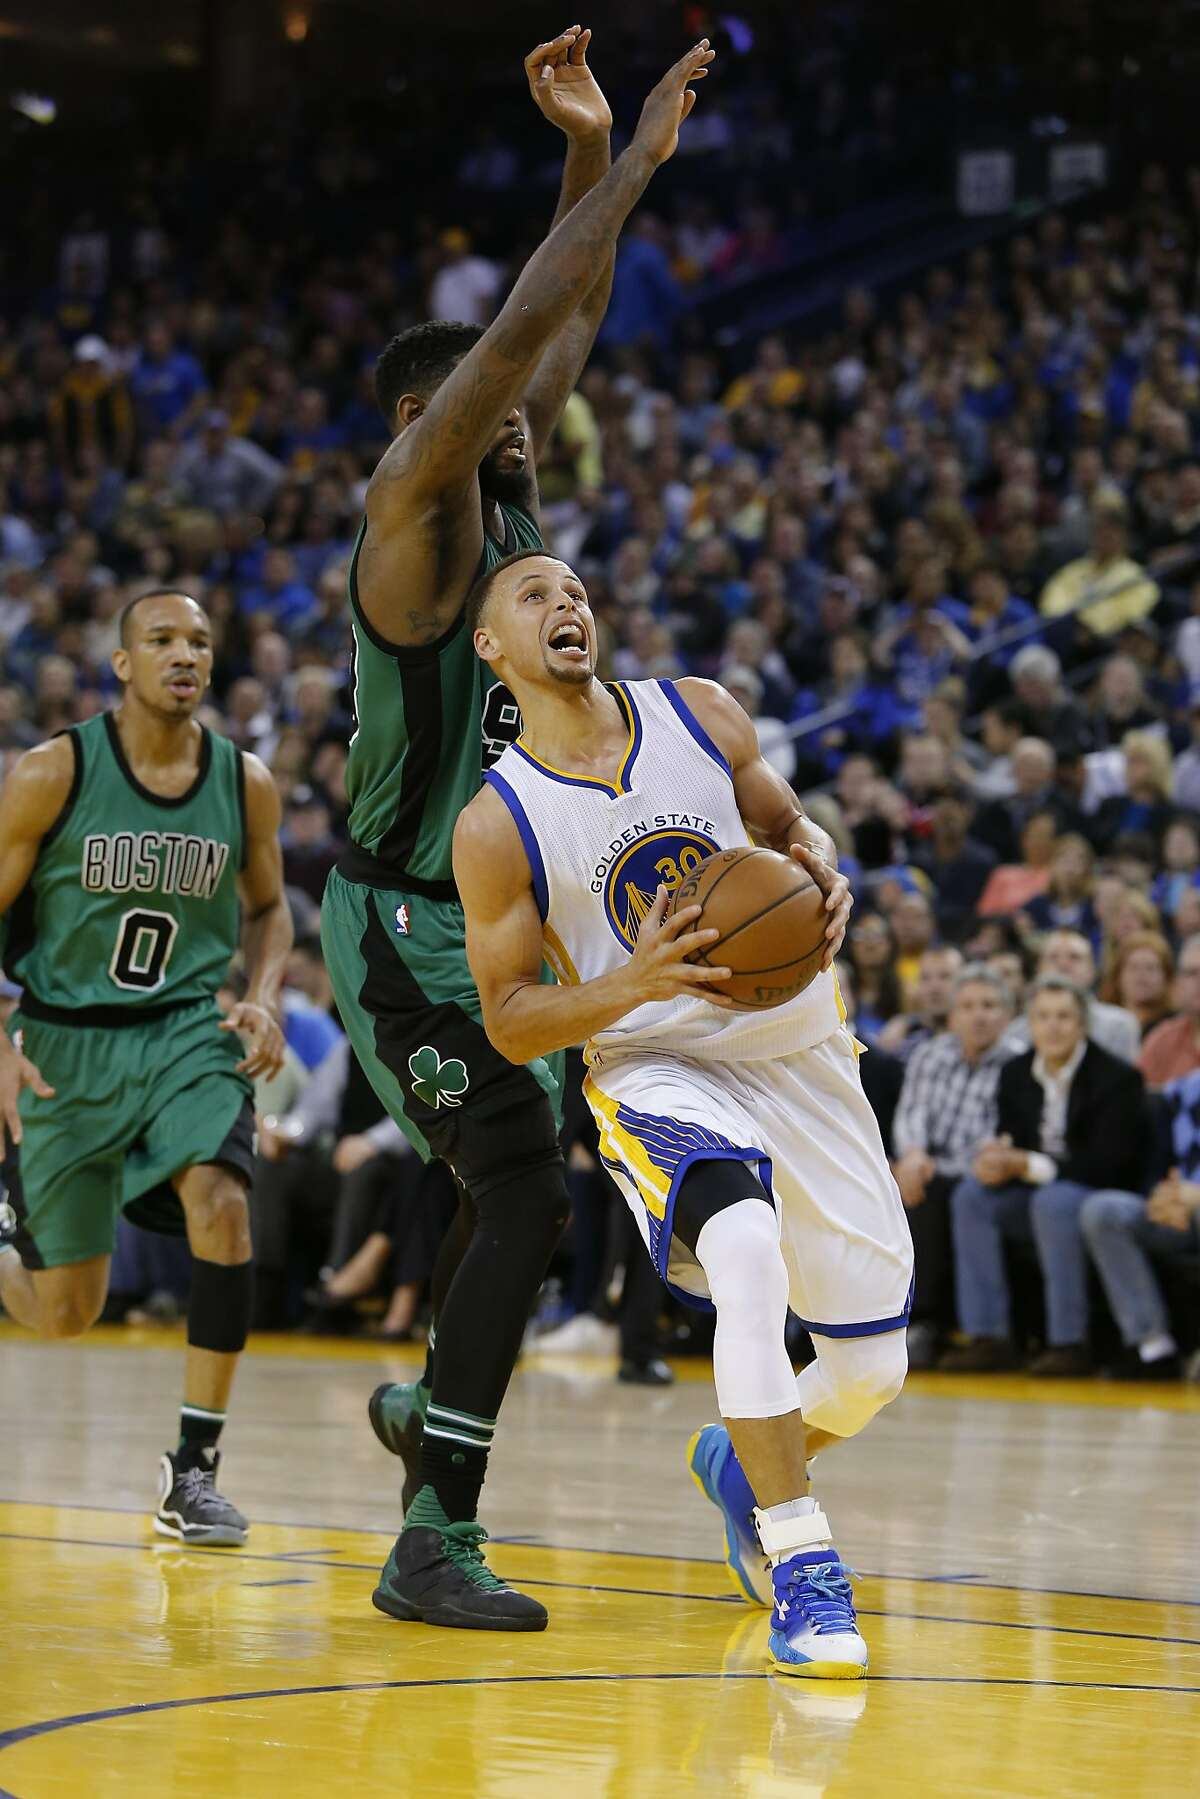 Warriors' Stephen Curry, 30 drives past the Celtics' Amir Johnson, 90 in the second half, as the Golden State Warriors went on to lose to the Boston Celtics 106-109 in NBA action at Oracle Arena, in Oakland, California, on Fri. April 1, 2016